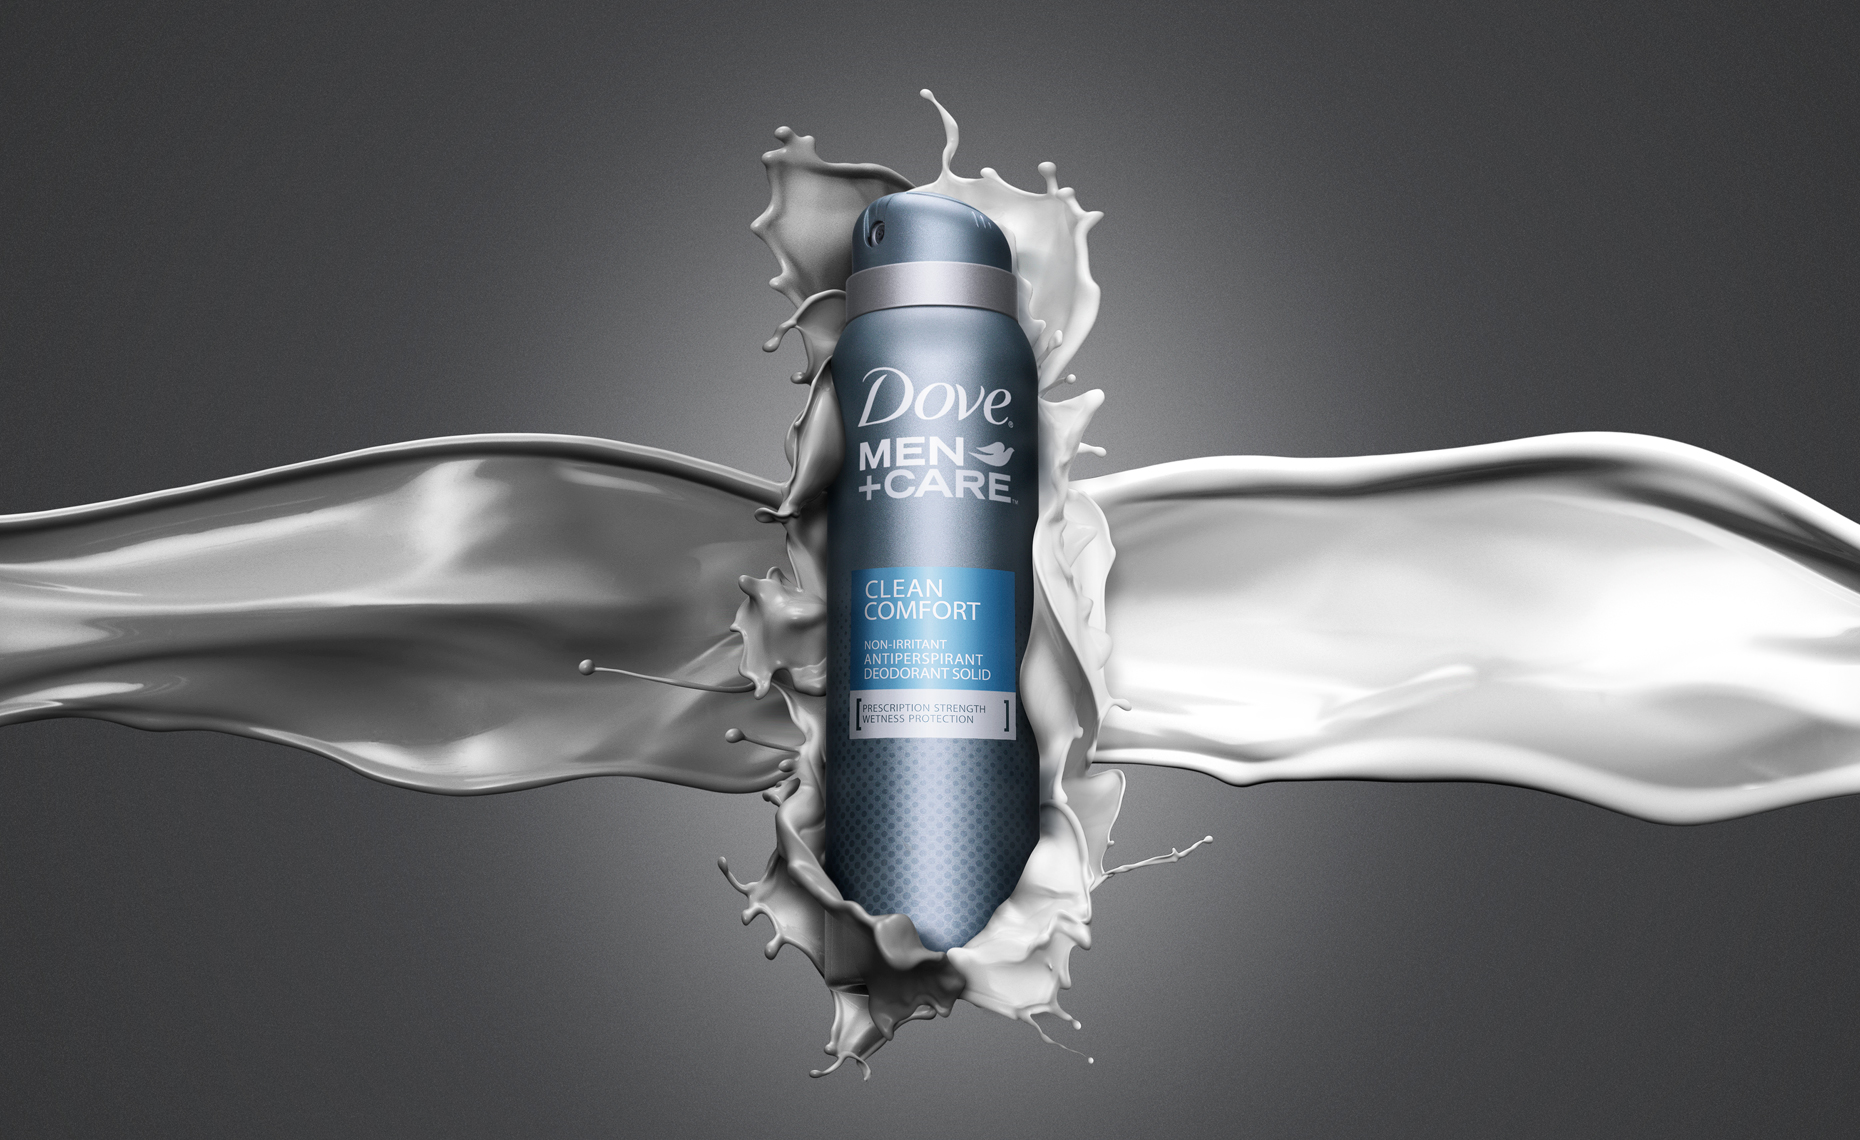 dove for men